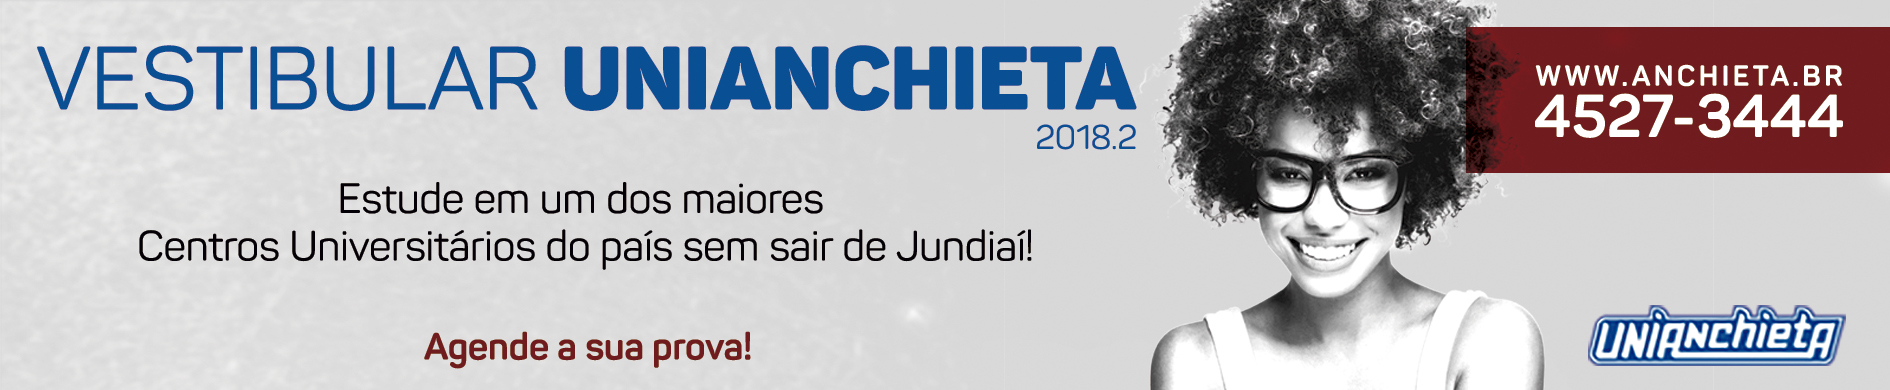 anchieta-banner-home-ve-2018-2